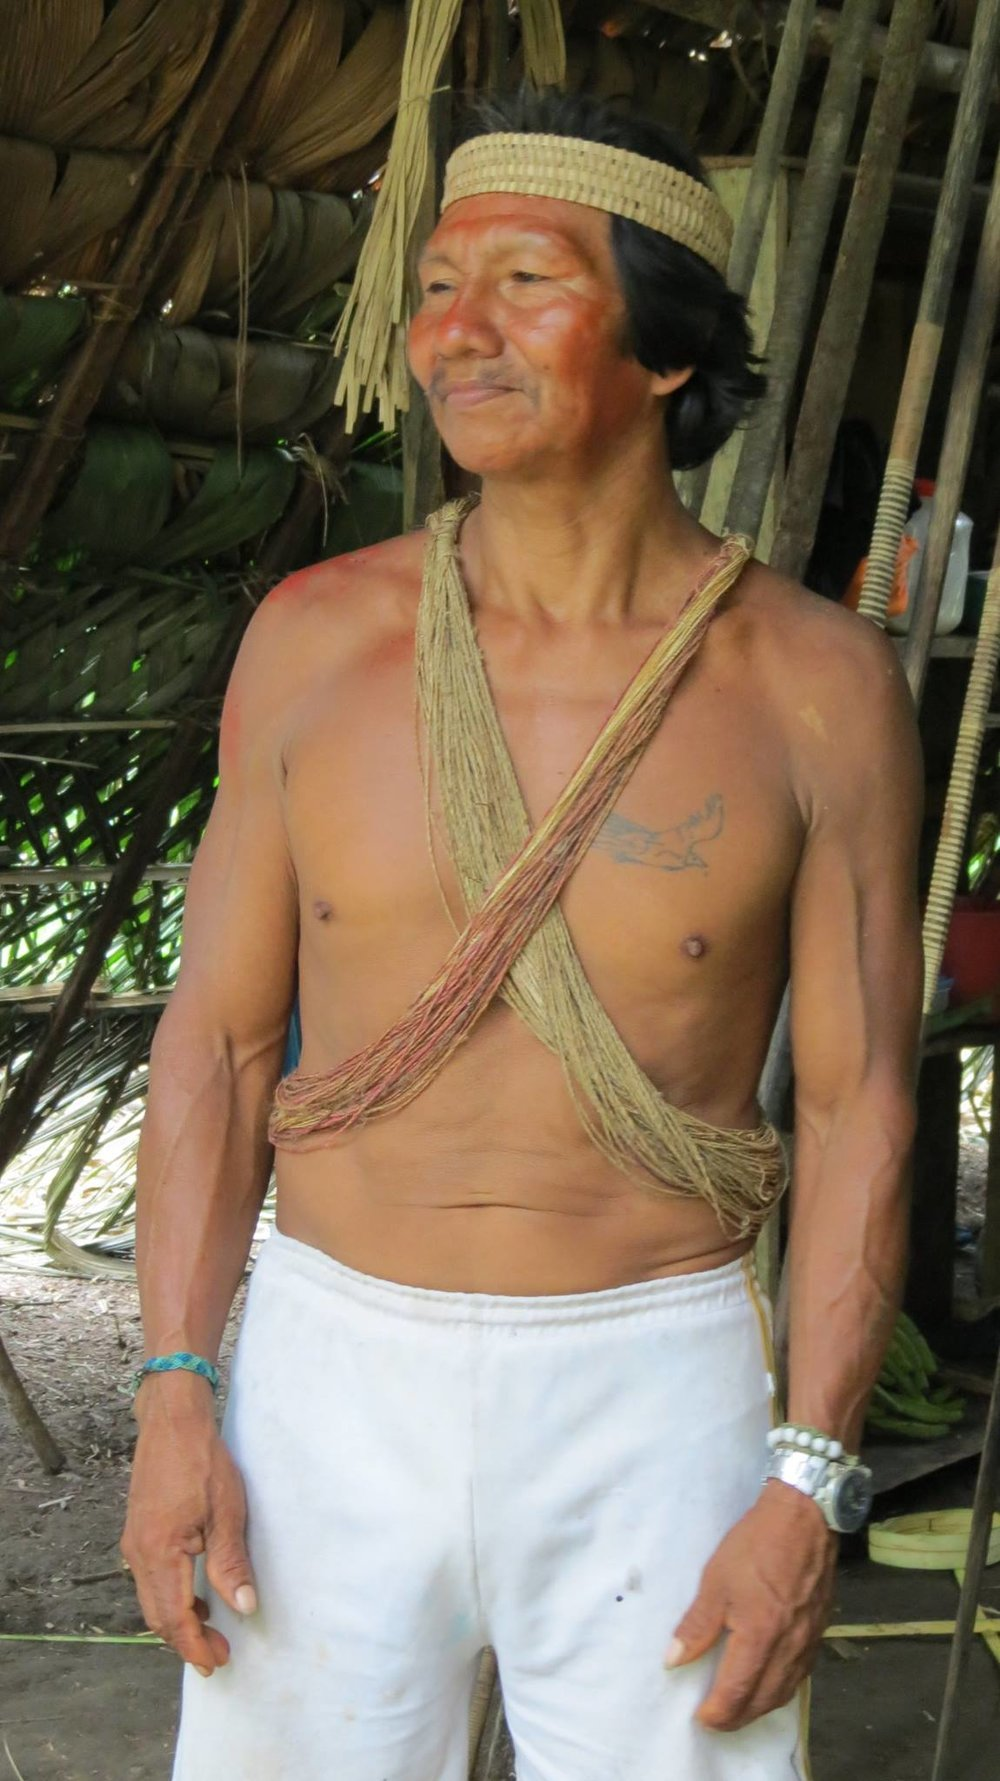 Huaorani leader Vai (pronounced 'Bai') is over 70 years old. He had more energy and muscle strength than a man 40 years his junior in modern society. Incredible!